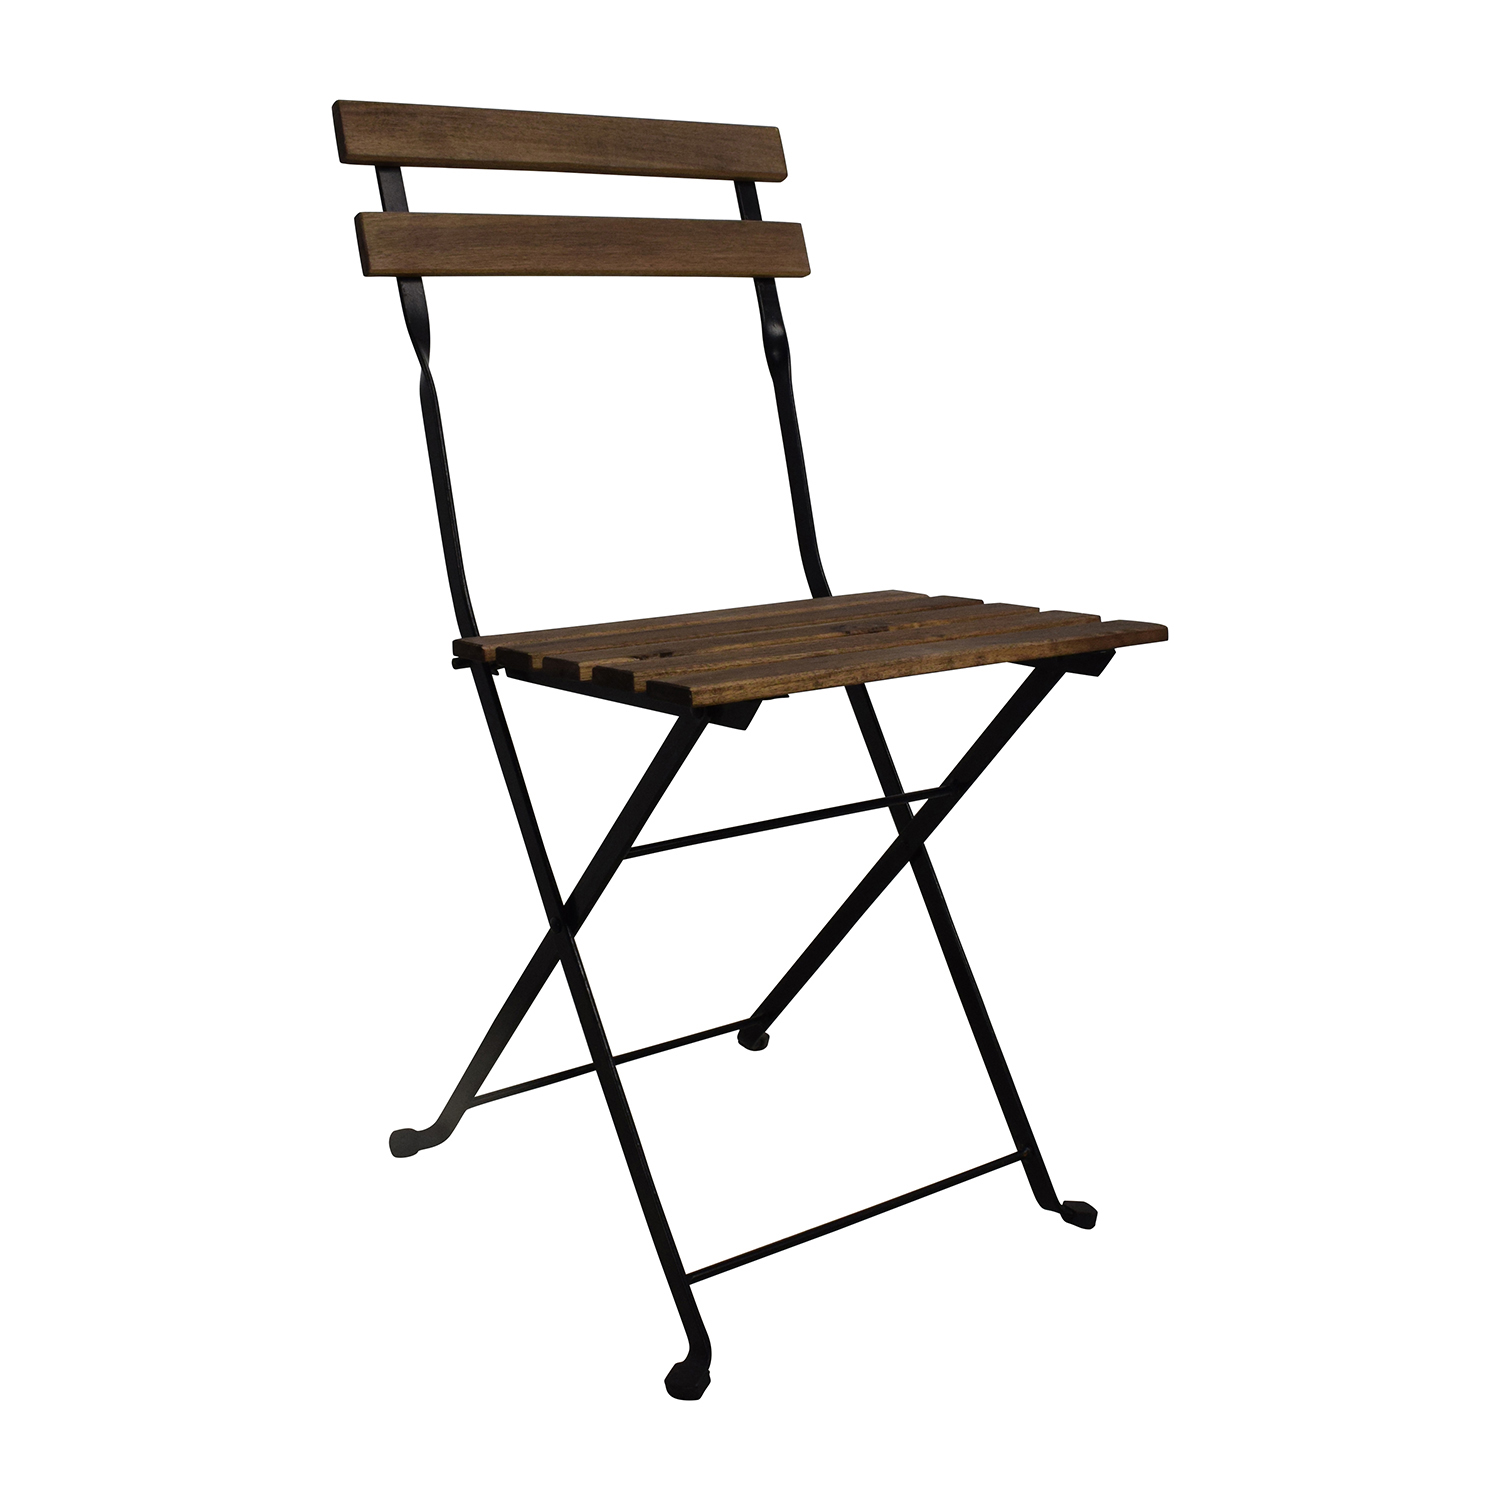 ... IKEA IKEA Tarno Folding Table and Two Folding Chairs  sc 1 st  Furnishare & 46% OFF - IKEA IKEA Tarno Folding Table and Two Folding Chairs / Tables